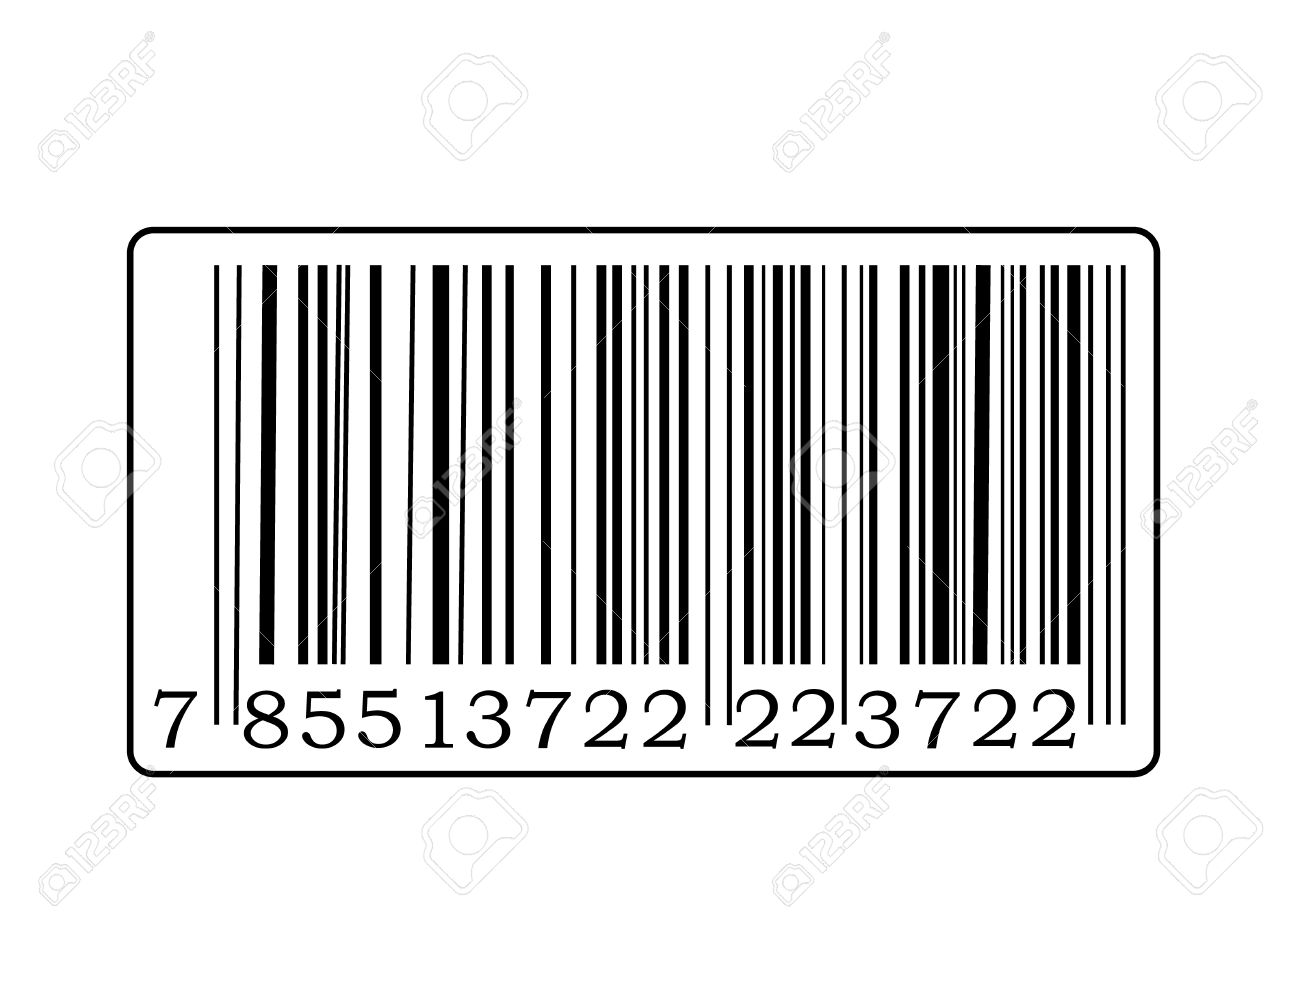 barcode label clipart clipground. Black Bedroom Furniture Sets. Home Design Ideas